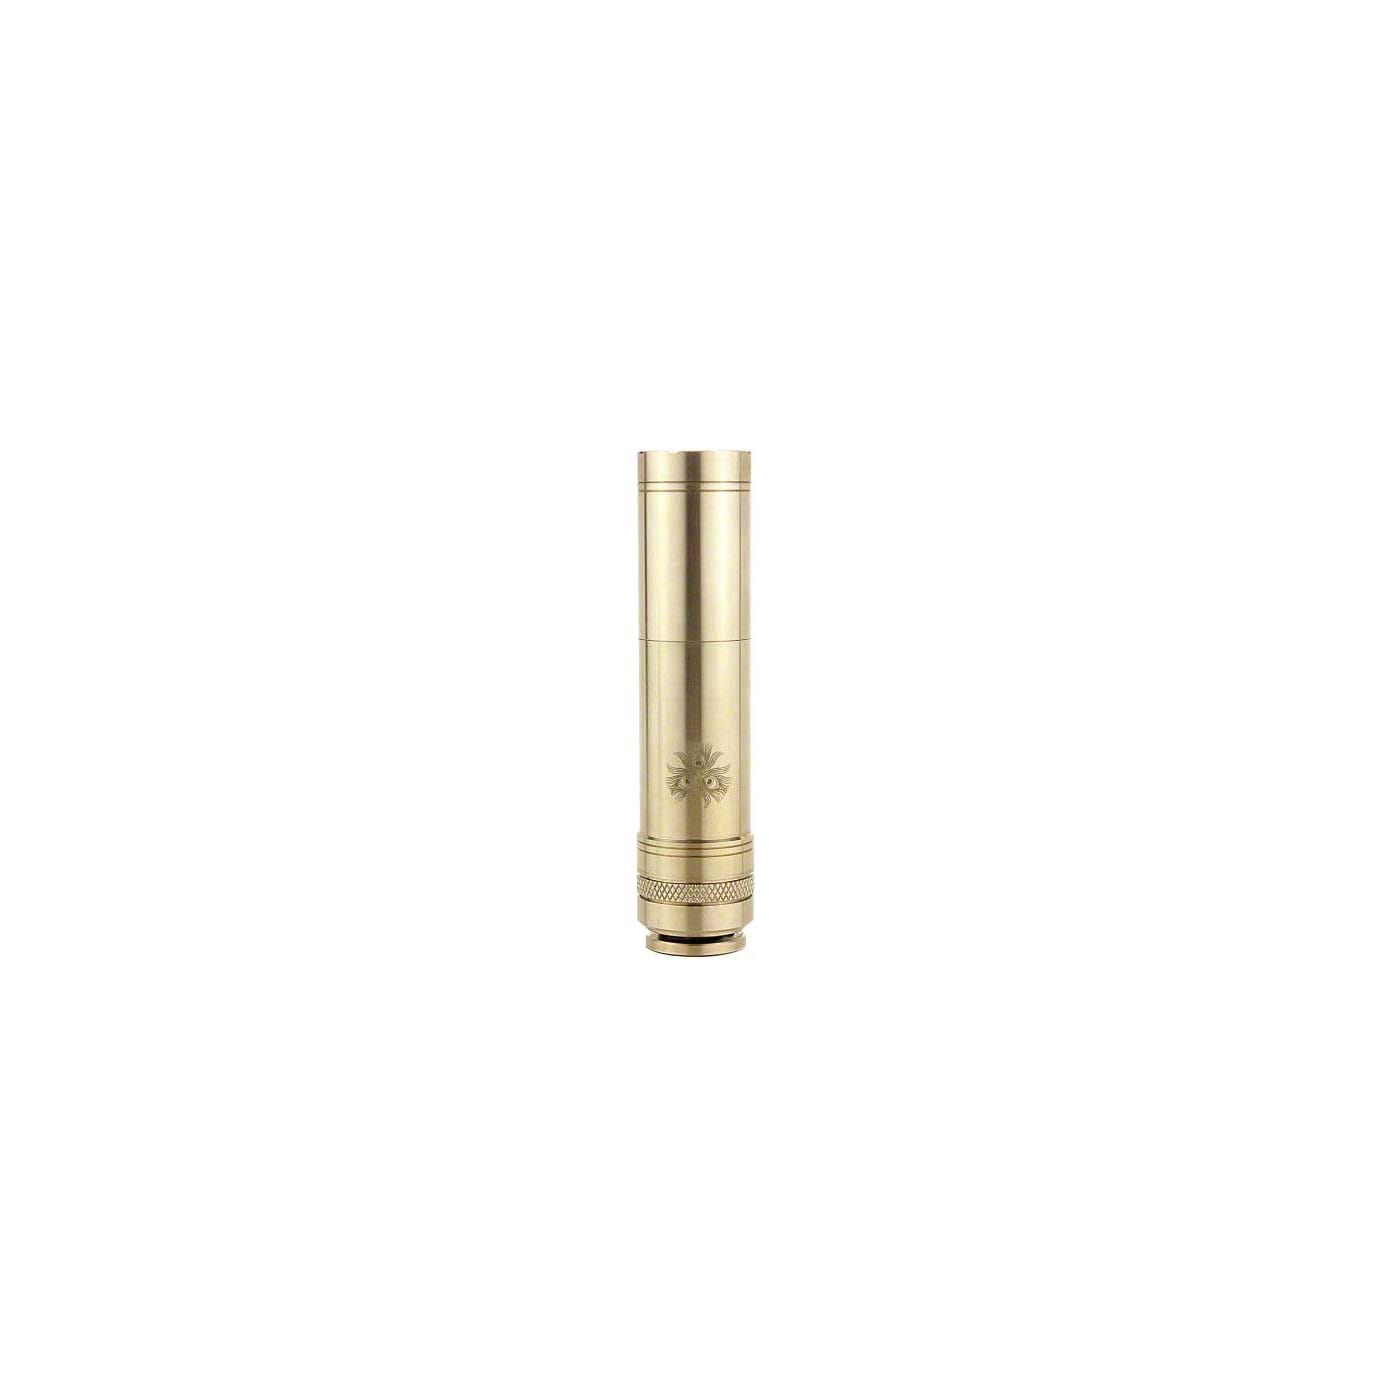 Chillum Tantra Mechanical Mod MADE IN USA 2